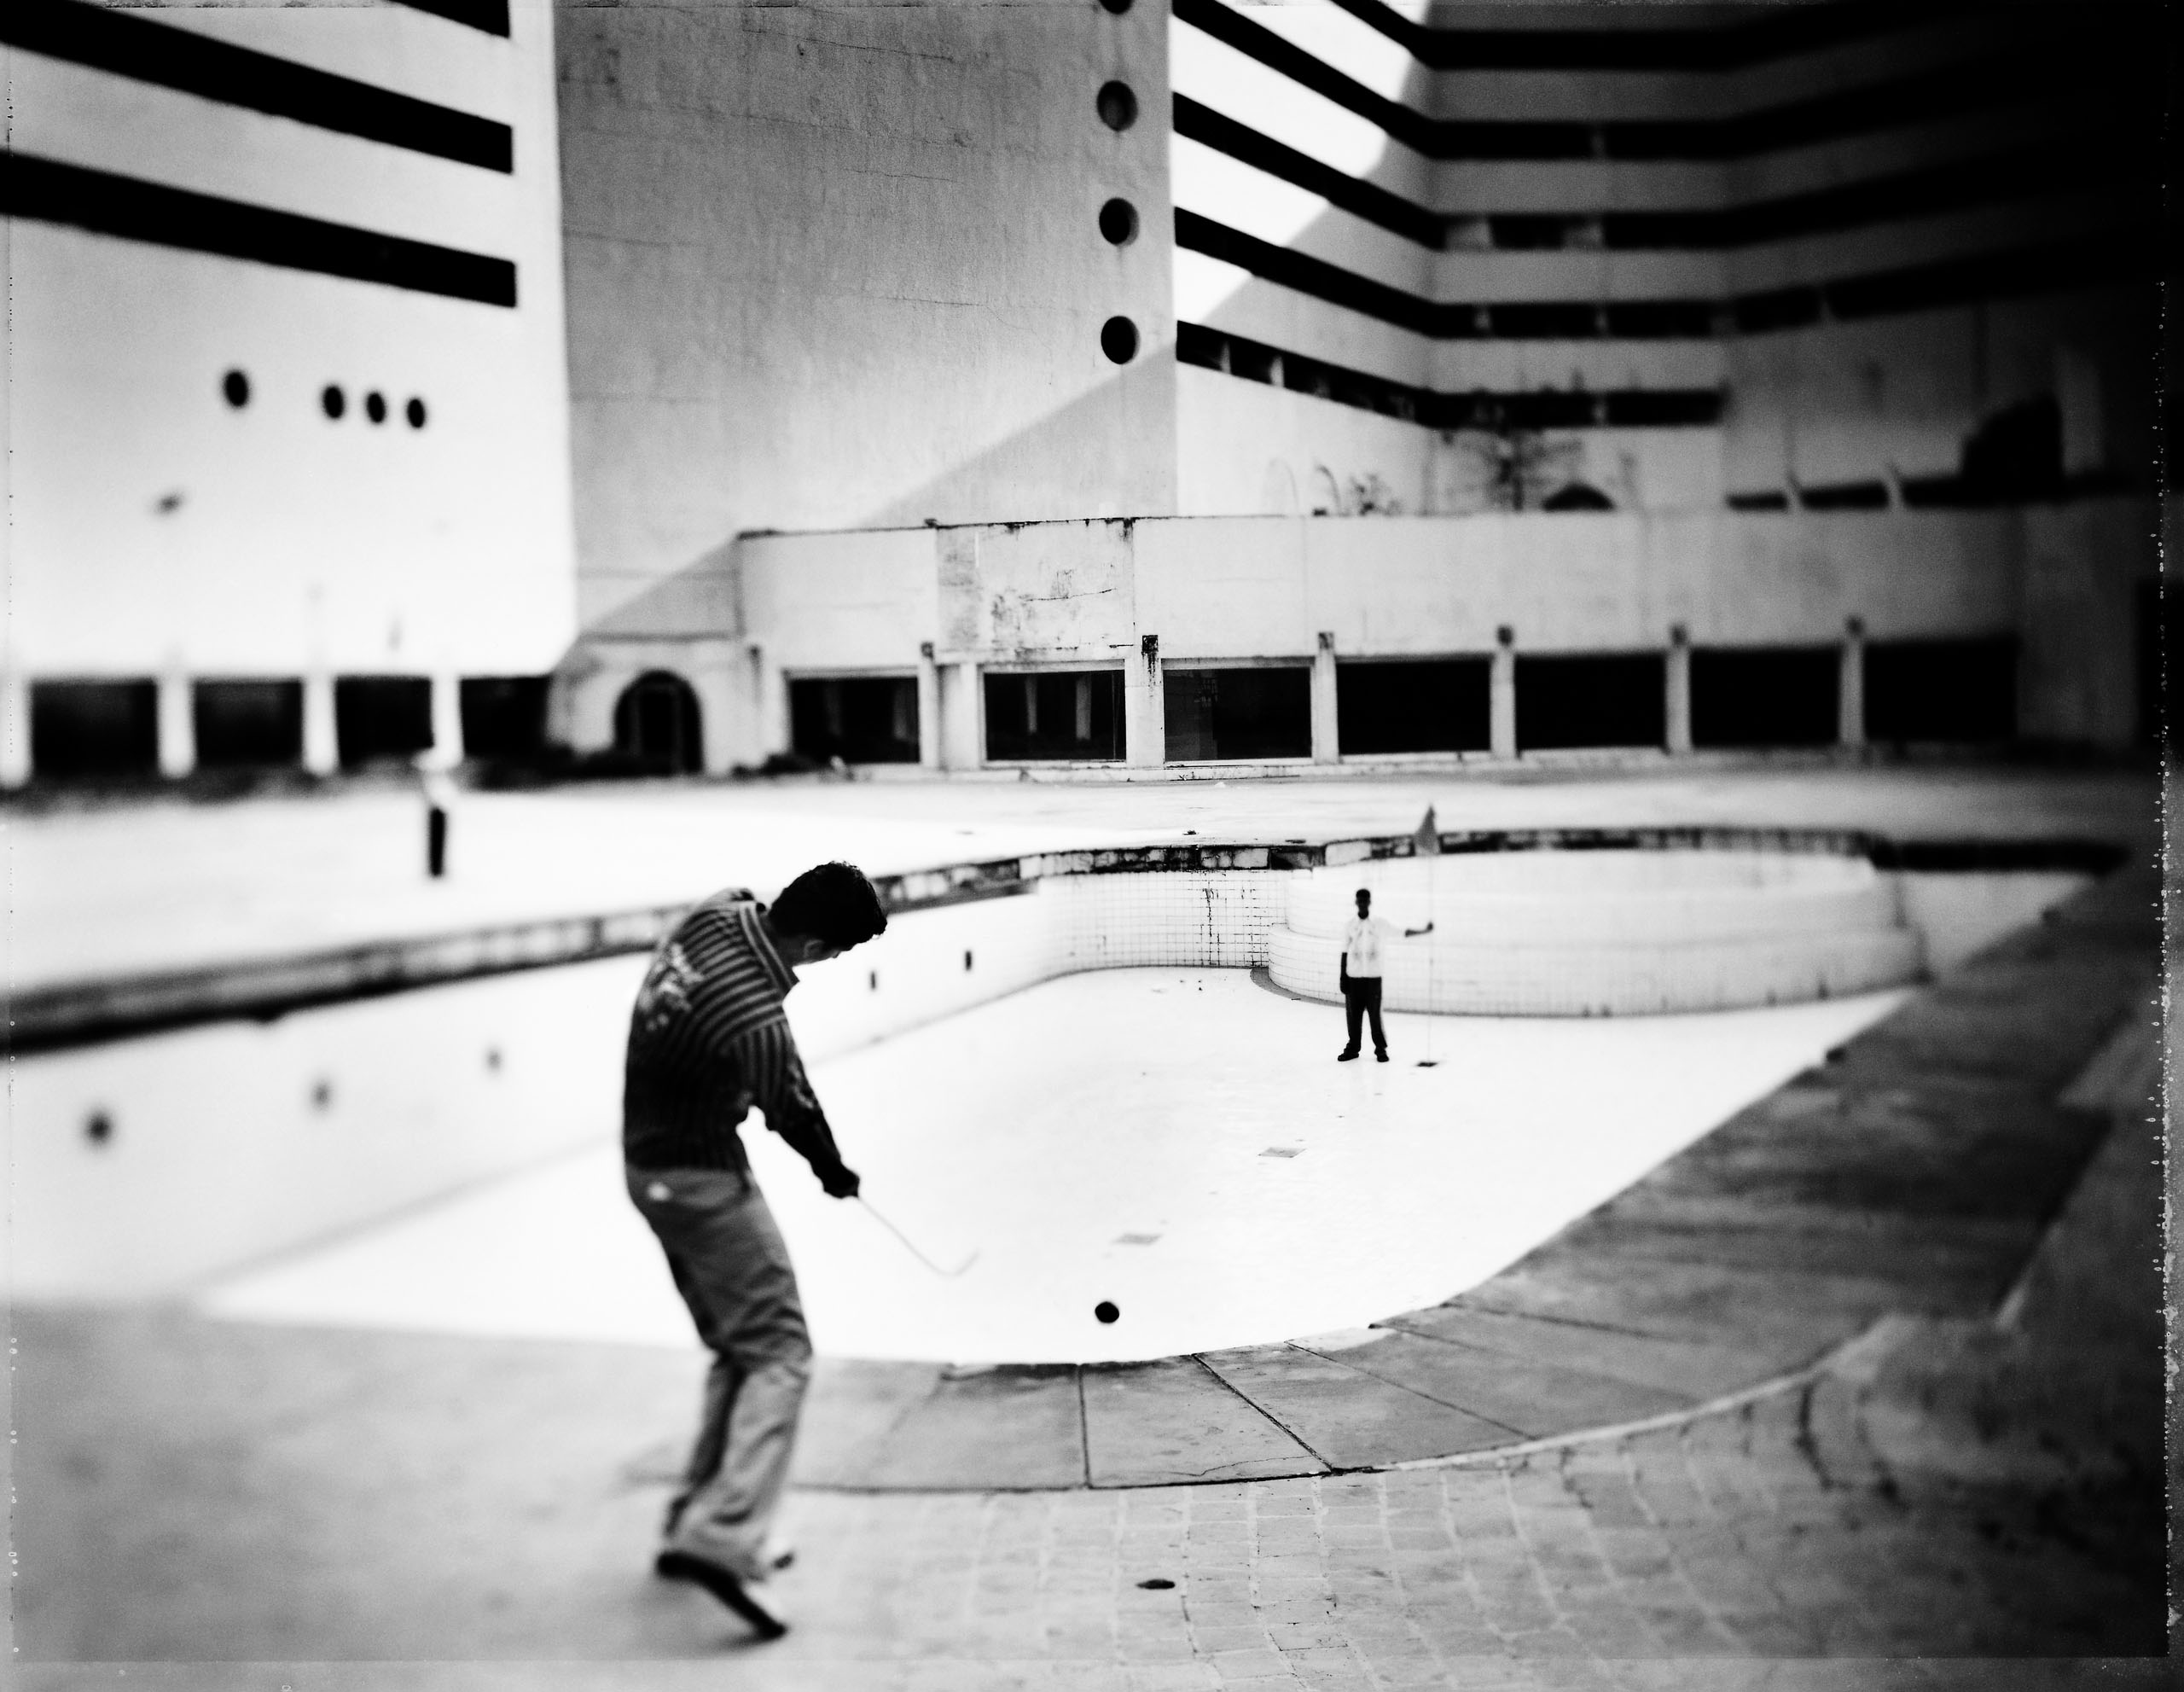 Harish practices his short game. Photo by Tomasz Gudzowaty.